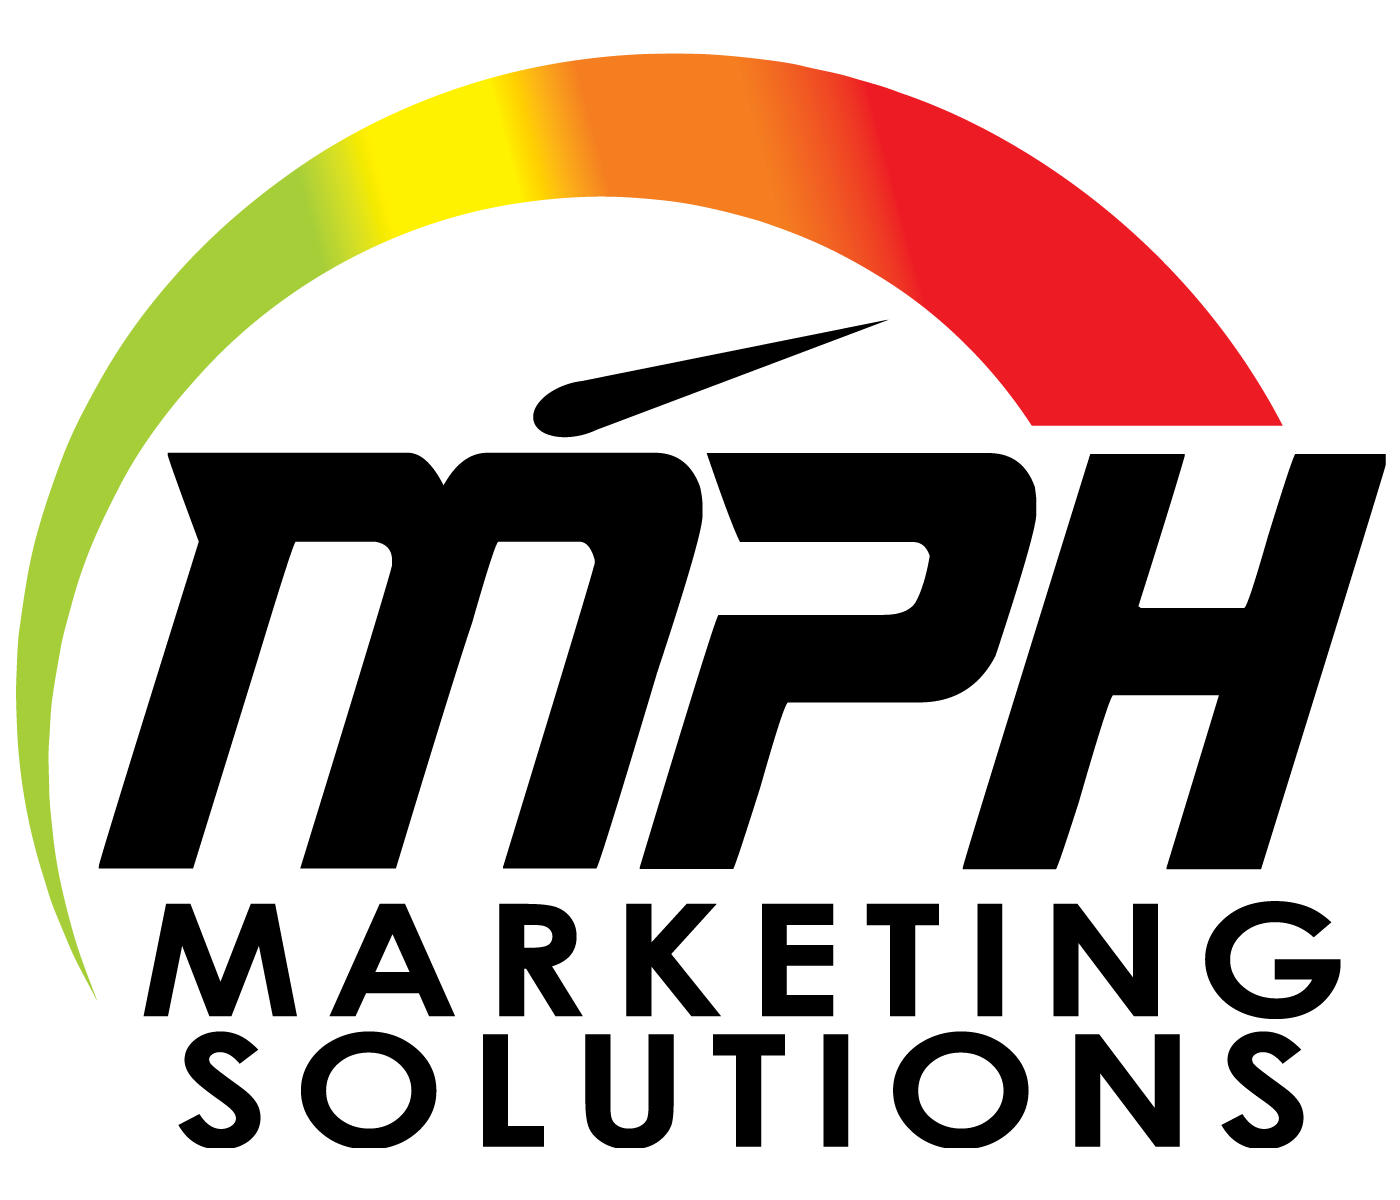 MPH Marketing Solutions is your local, one stop shop for all of your internet marketing and digital advertising needs! If you are feeling frustrated with your online marketing, don't worry. You are at the right place, we can help. As your partner we will work with you on a full online strategy. Utilizing an abundance of expertise in Website Design & Development, SEM – Search Engine Marketing, SEO – Search Engine Optimization, Desktop & Mobile Display Advertising, Social Media Management & Ads, Video Production, Media Buying, Graphic Design, Direct Marketing and much more, we have you covered.